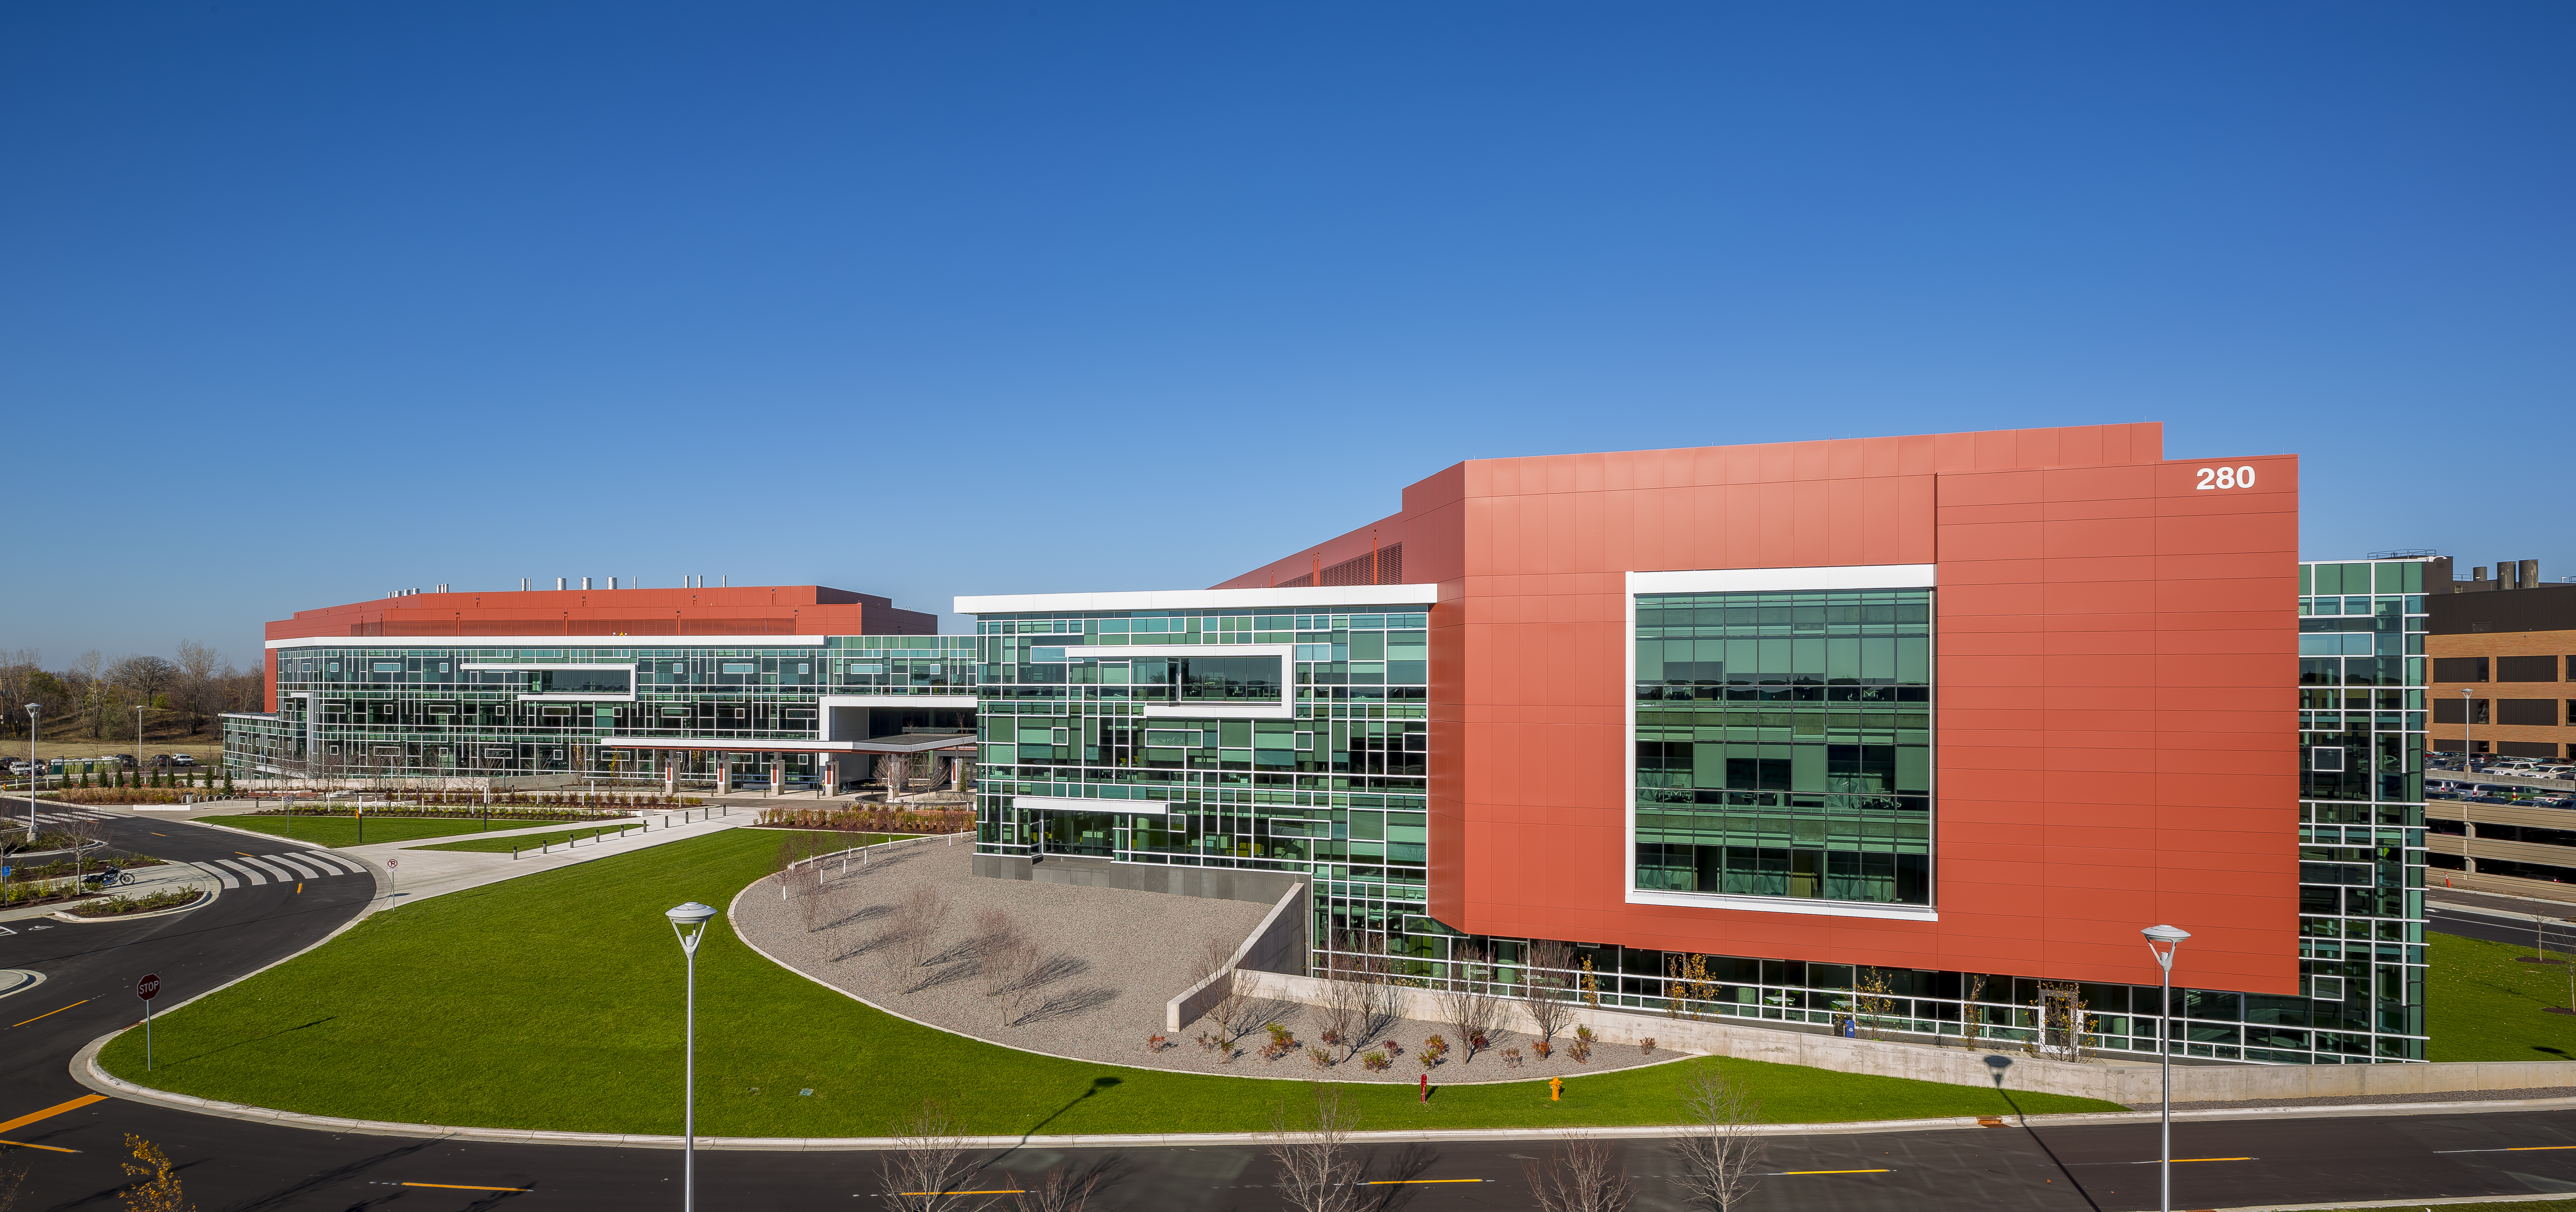 3m St Paul Campus Map.3m Honors Legacy Of Research And Discovery 3m News United States